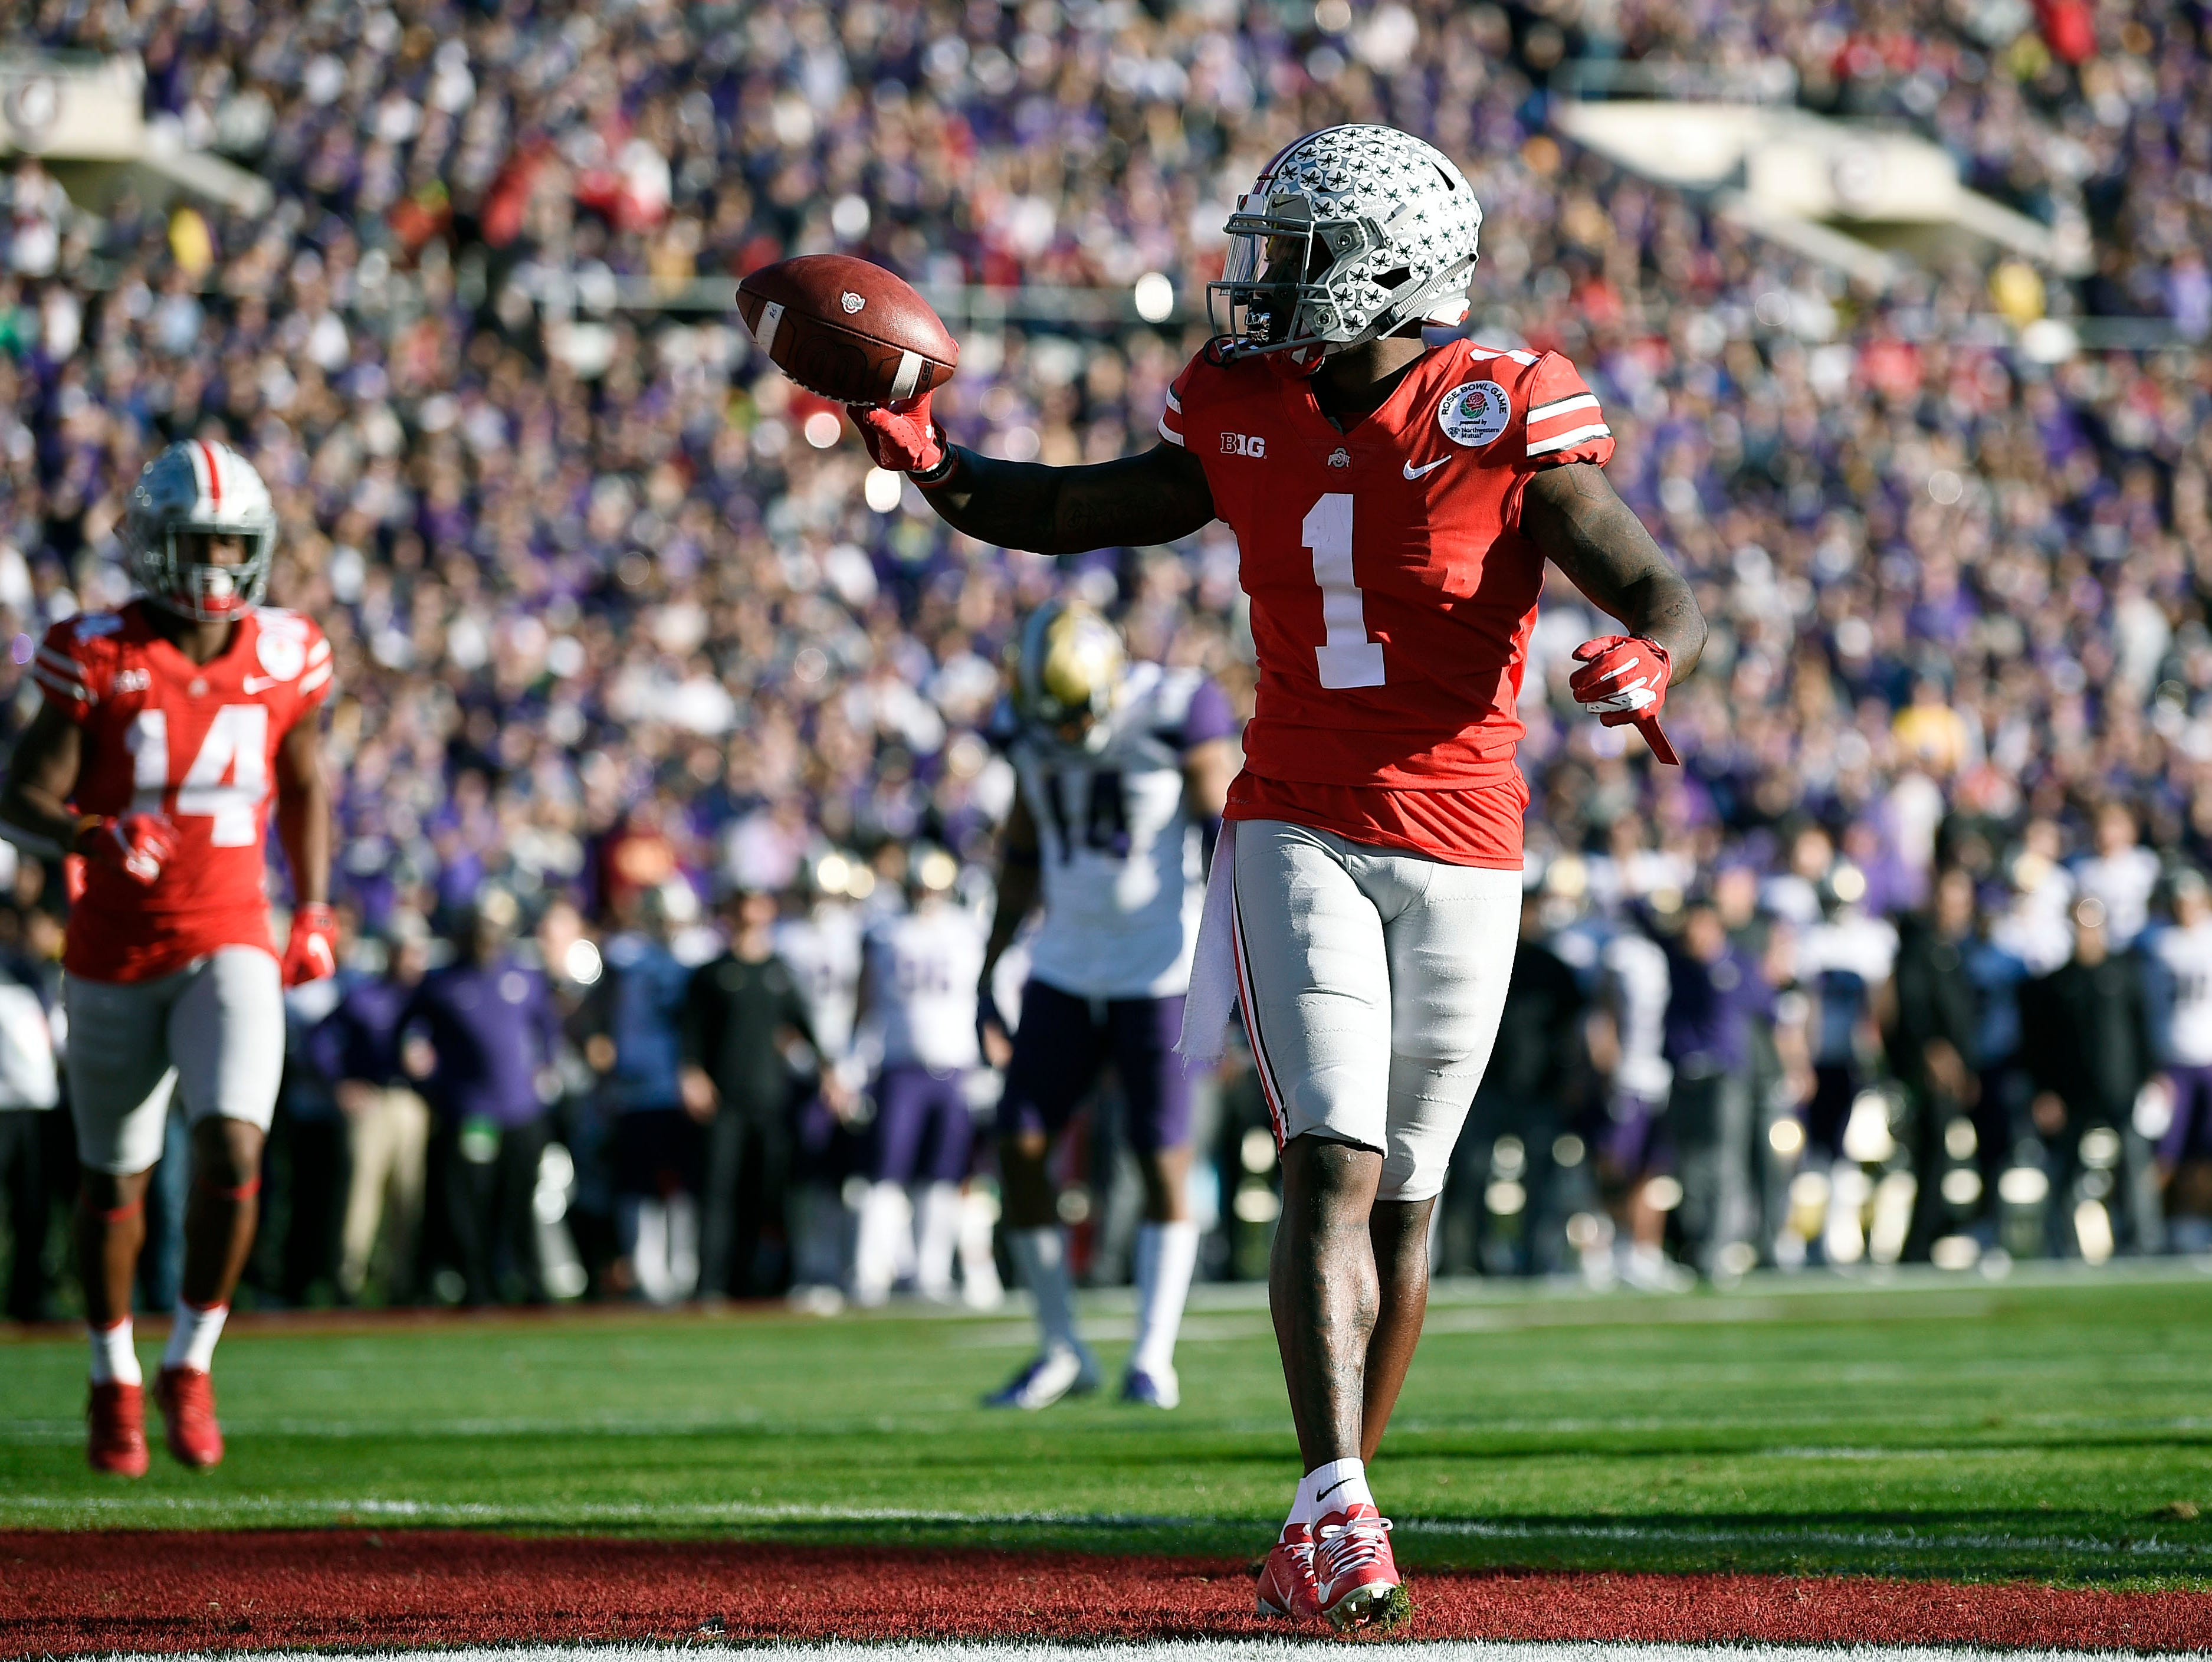 Ohio State Buckeyes wide receiver Johnnie Dixon (1) celebrates after scoring a touchdown in the second quarter against the Washington Huskies in the Rose Bowl.